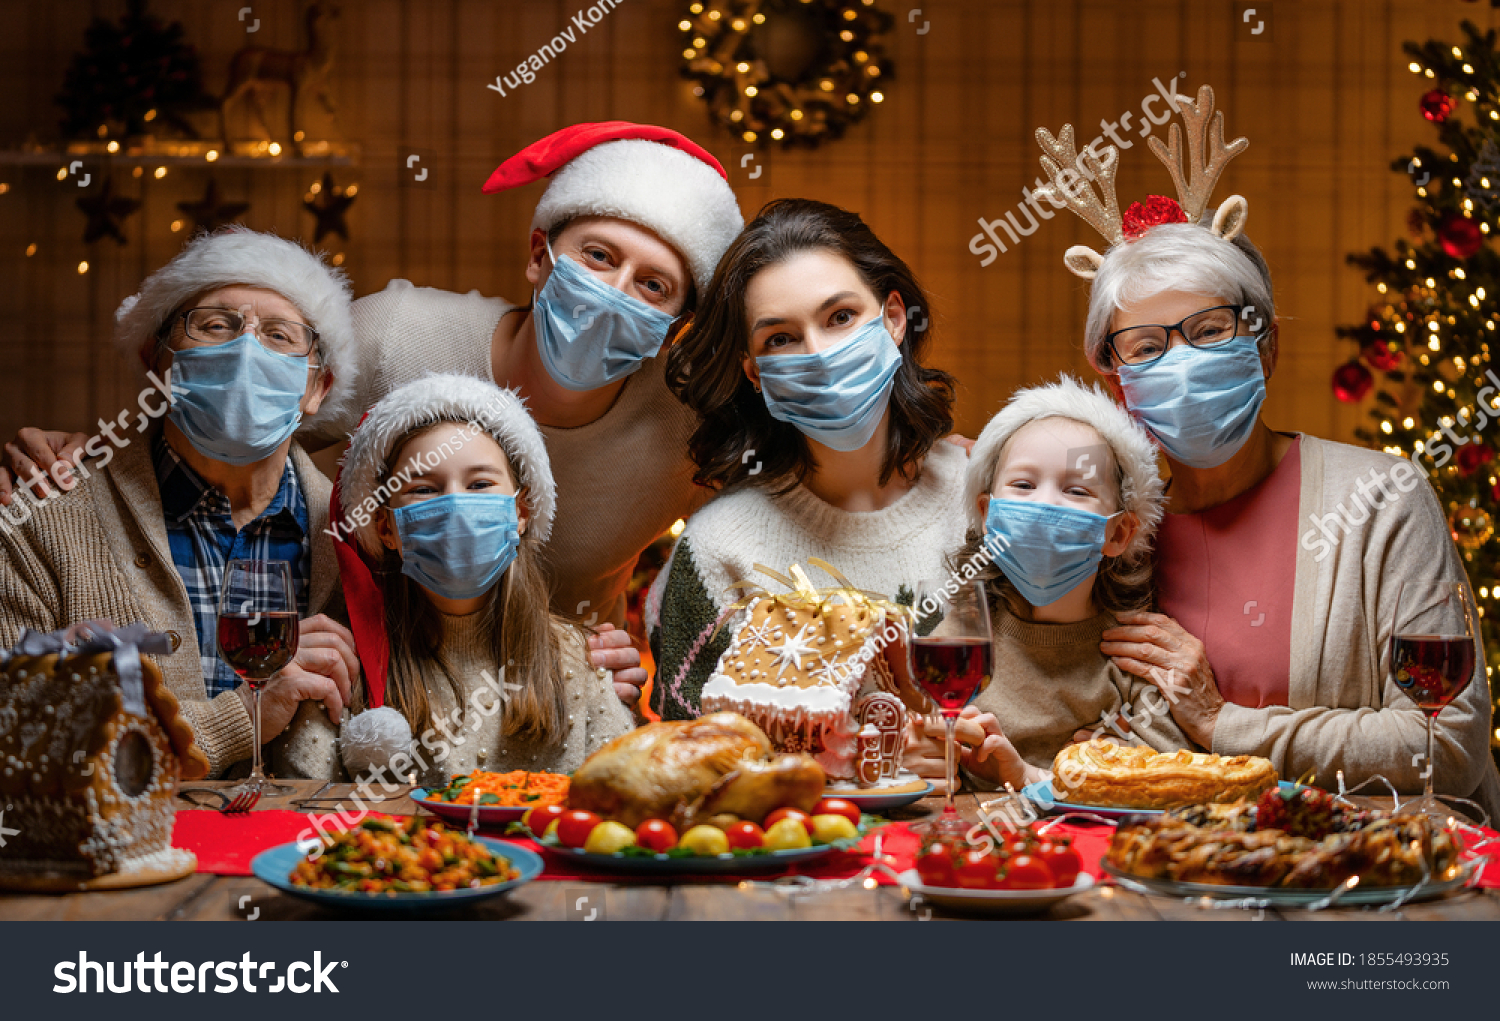 Merry Christmas! Happy family are having dinner at home. Celebration holiday and togetherness near tree. People are wearing facemasks. #1855493935